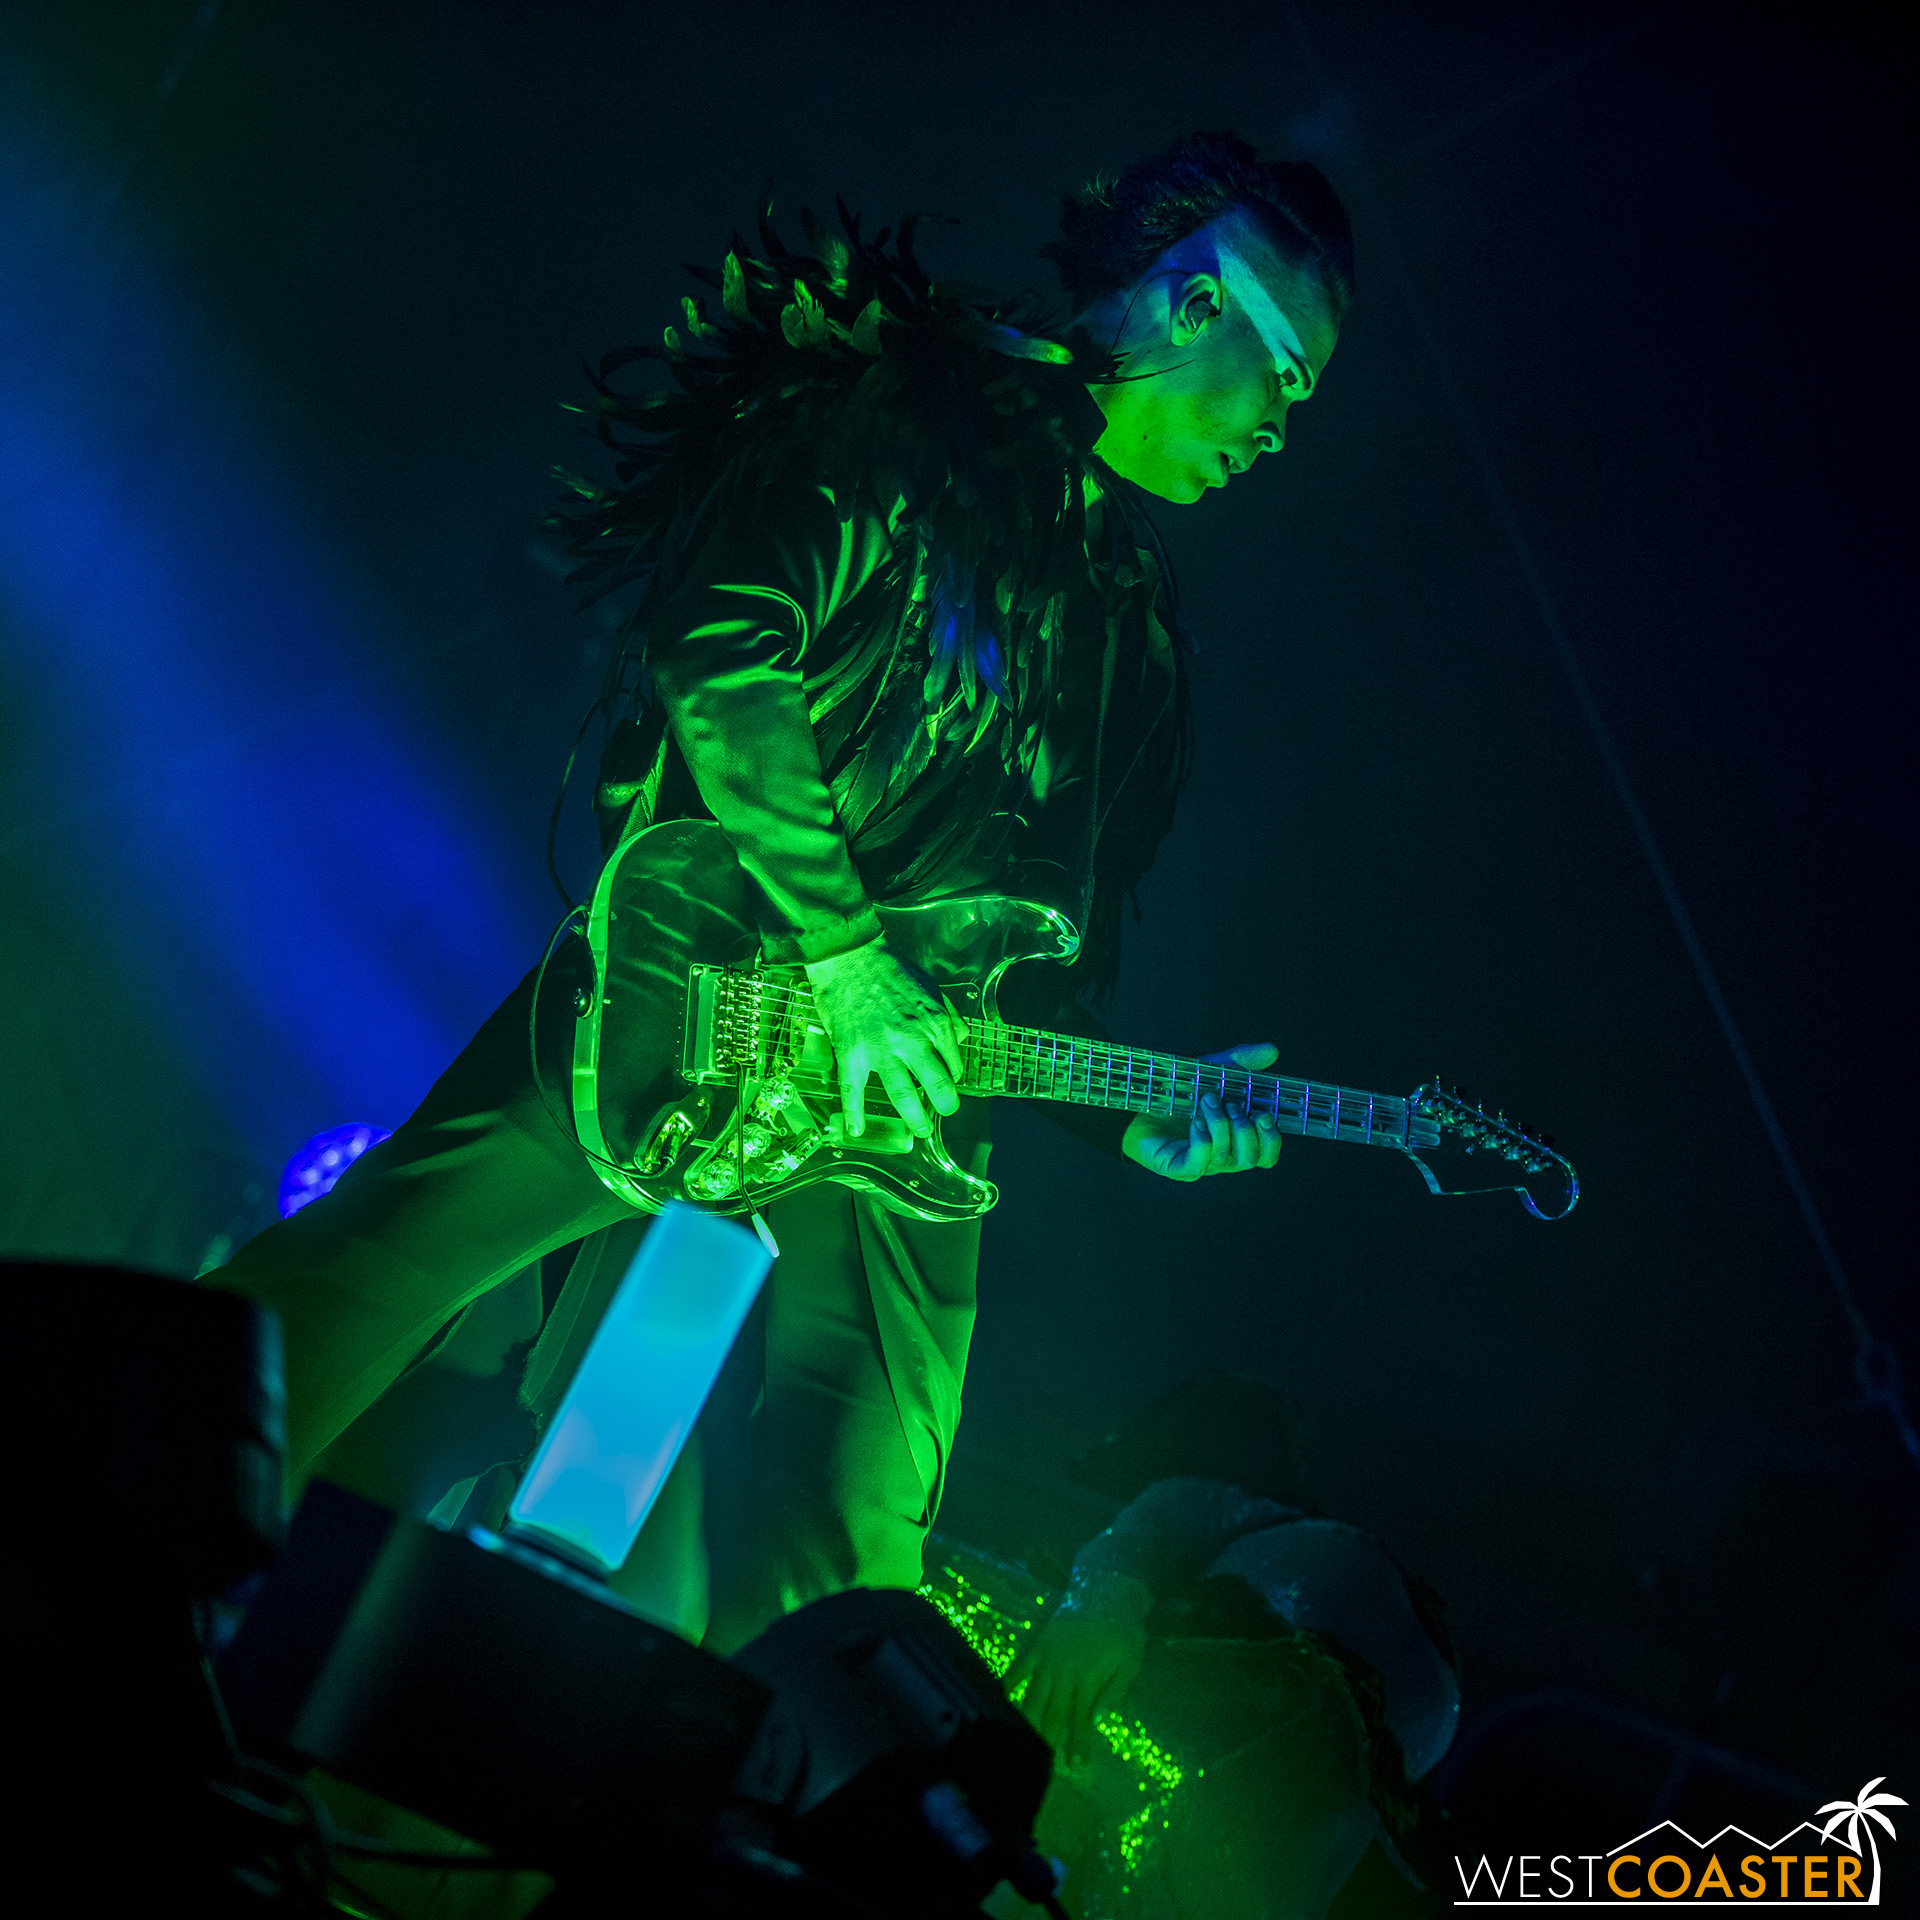 Luke Steele and his see-through guitar.